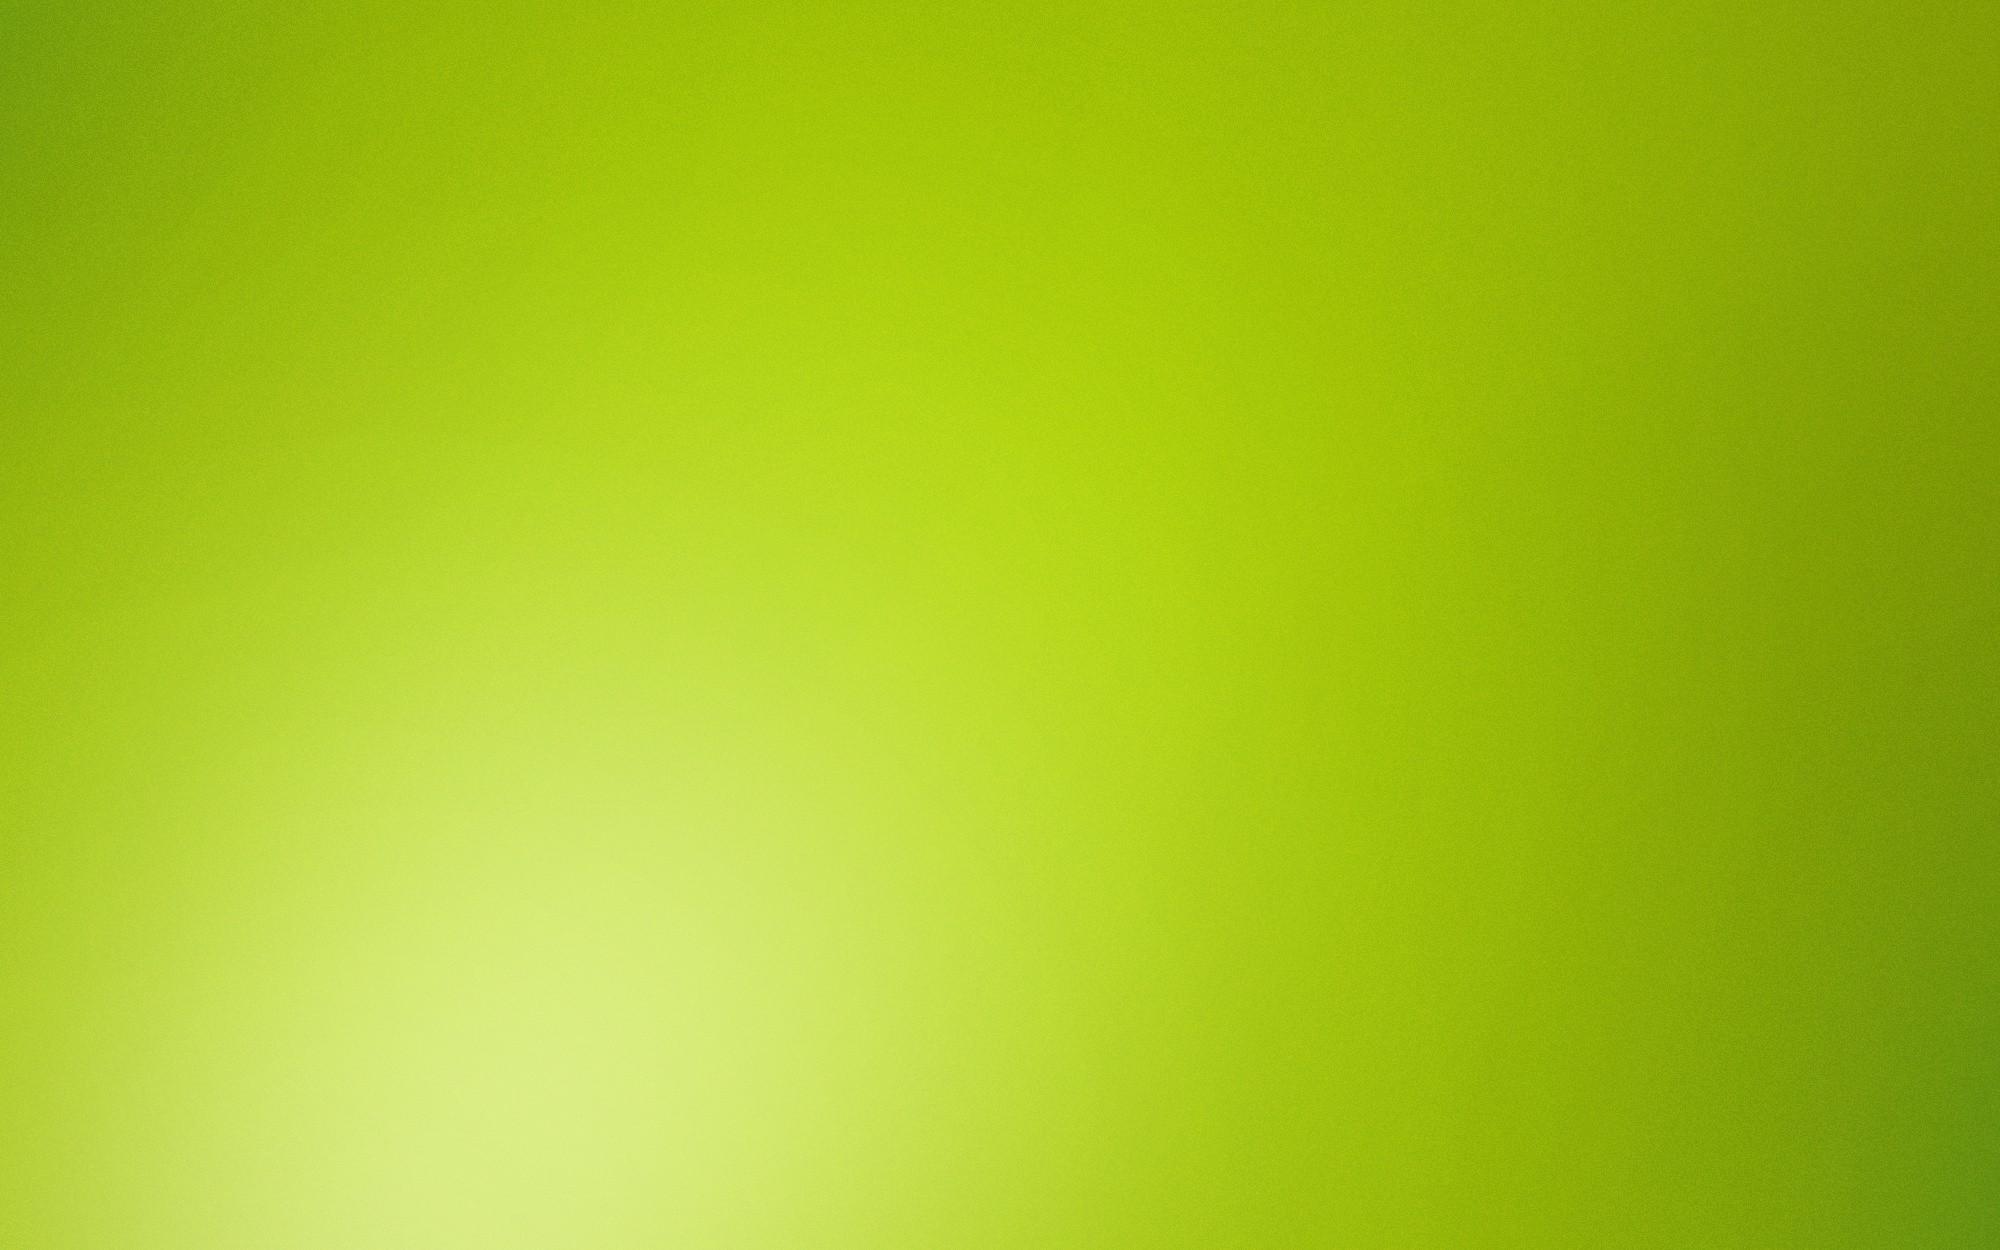 Green minimalistic gaussian blur HD Wallpaper